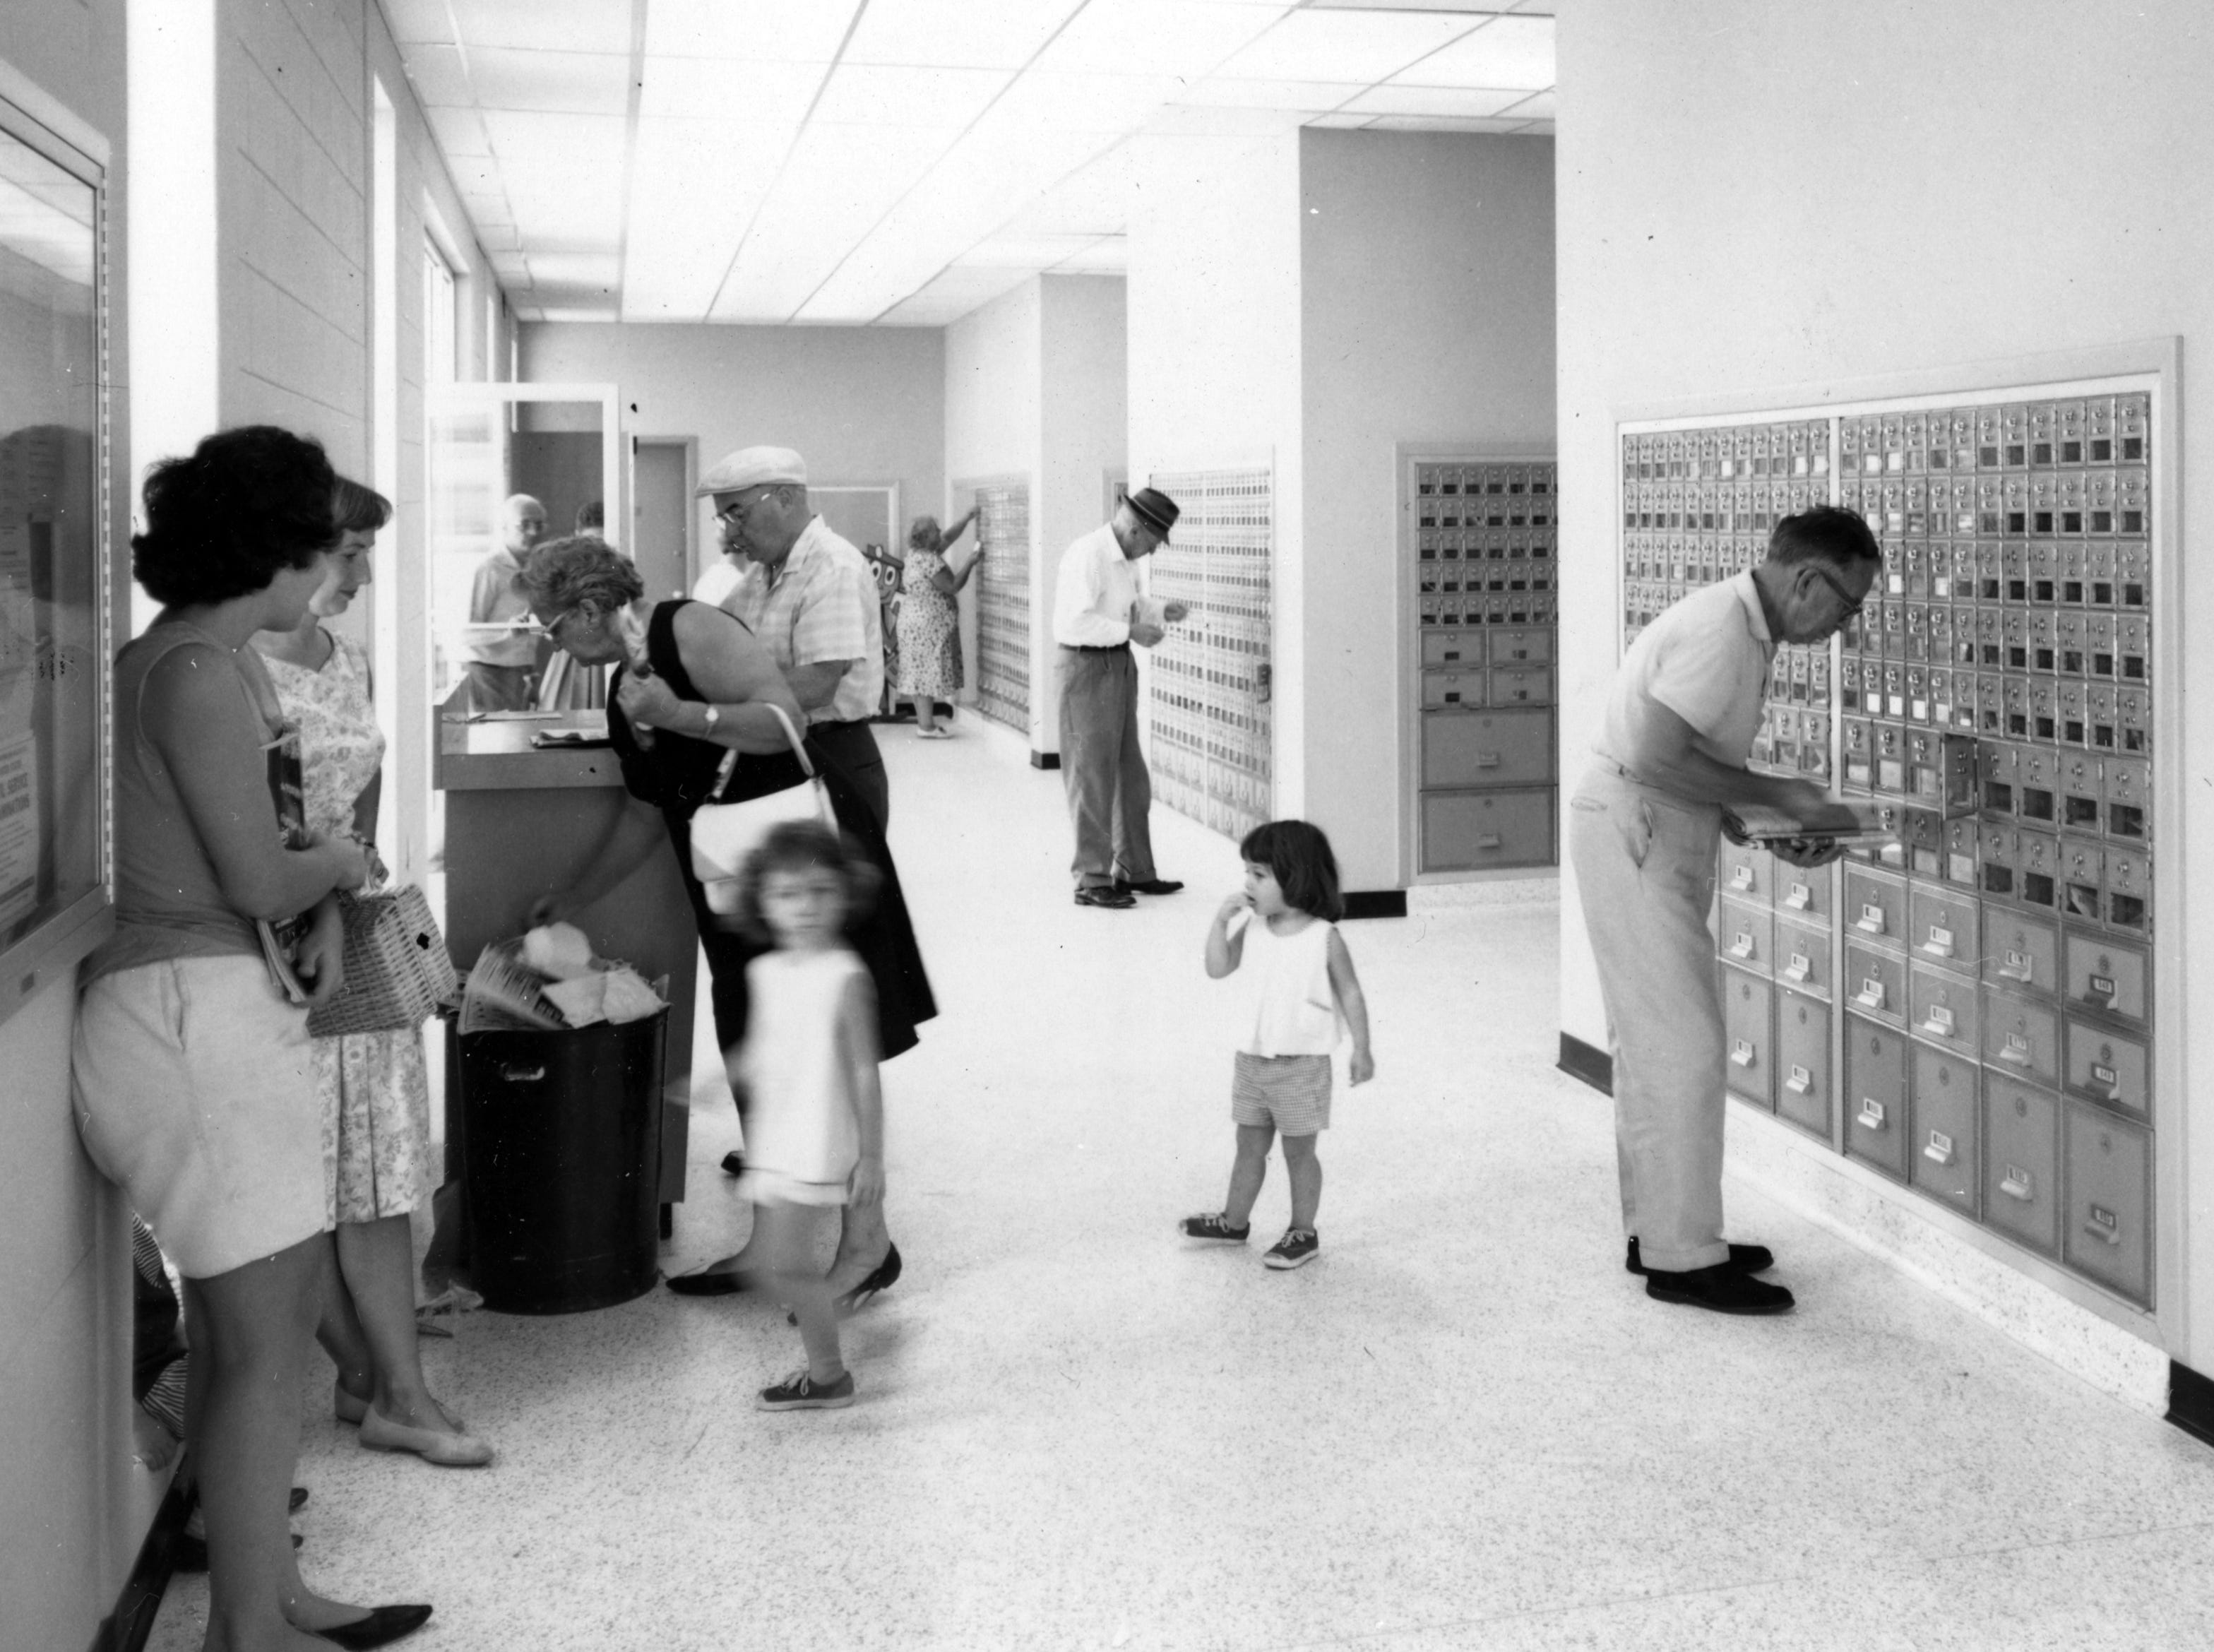 November 1965 - The downtown Vero Beach post office looks similar to how it did when it opened.